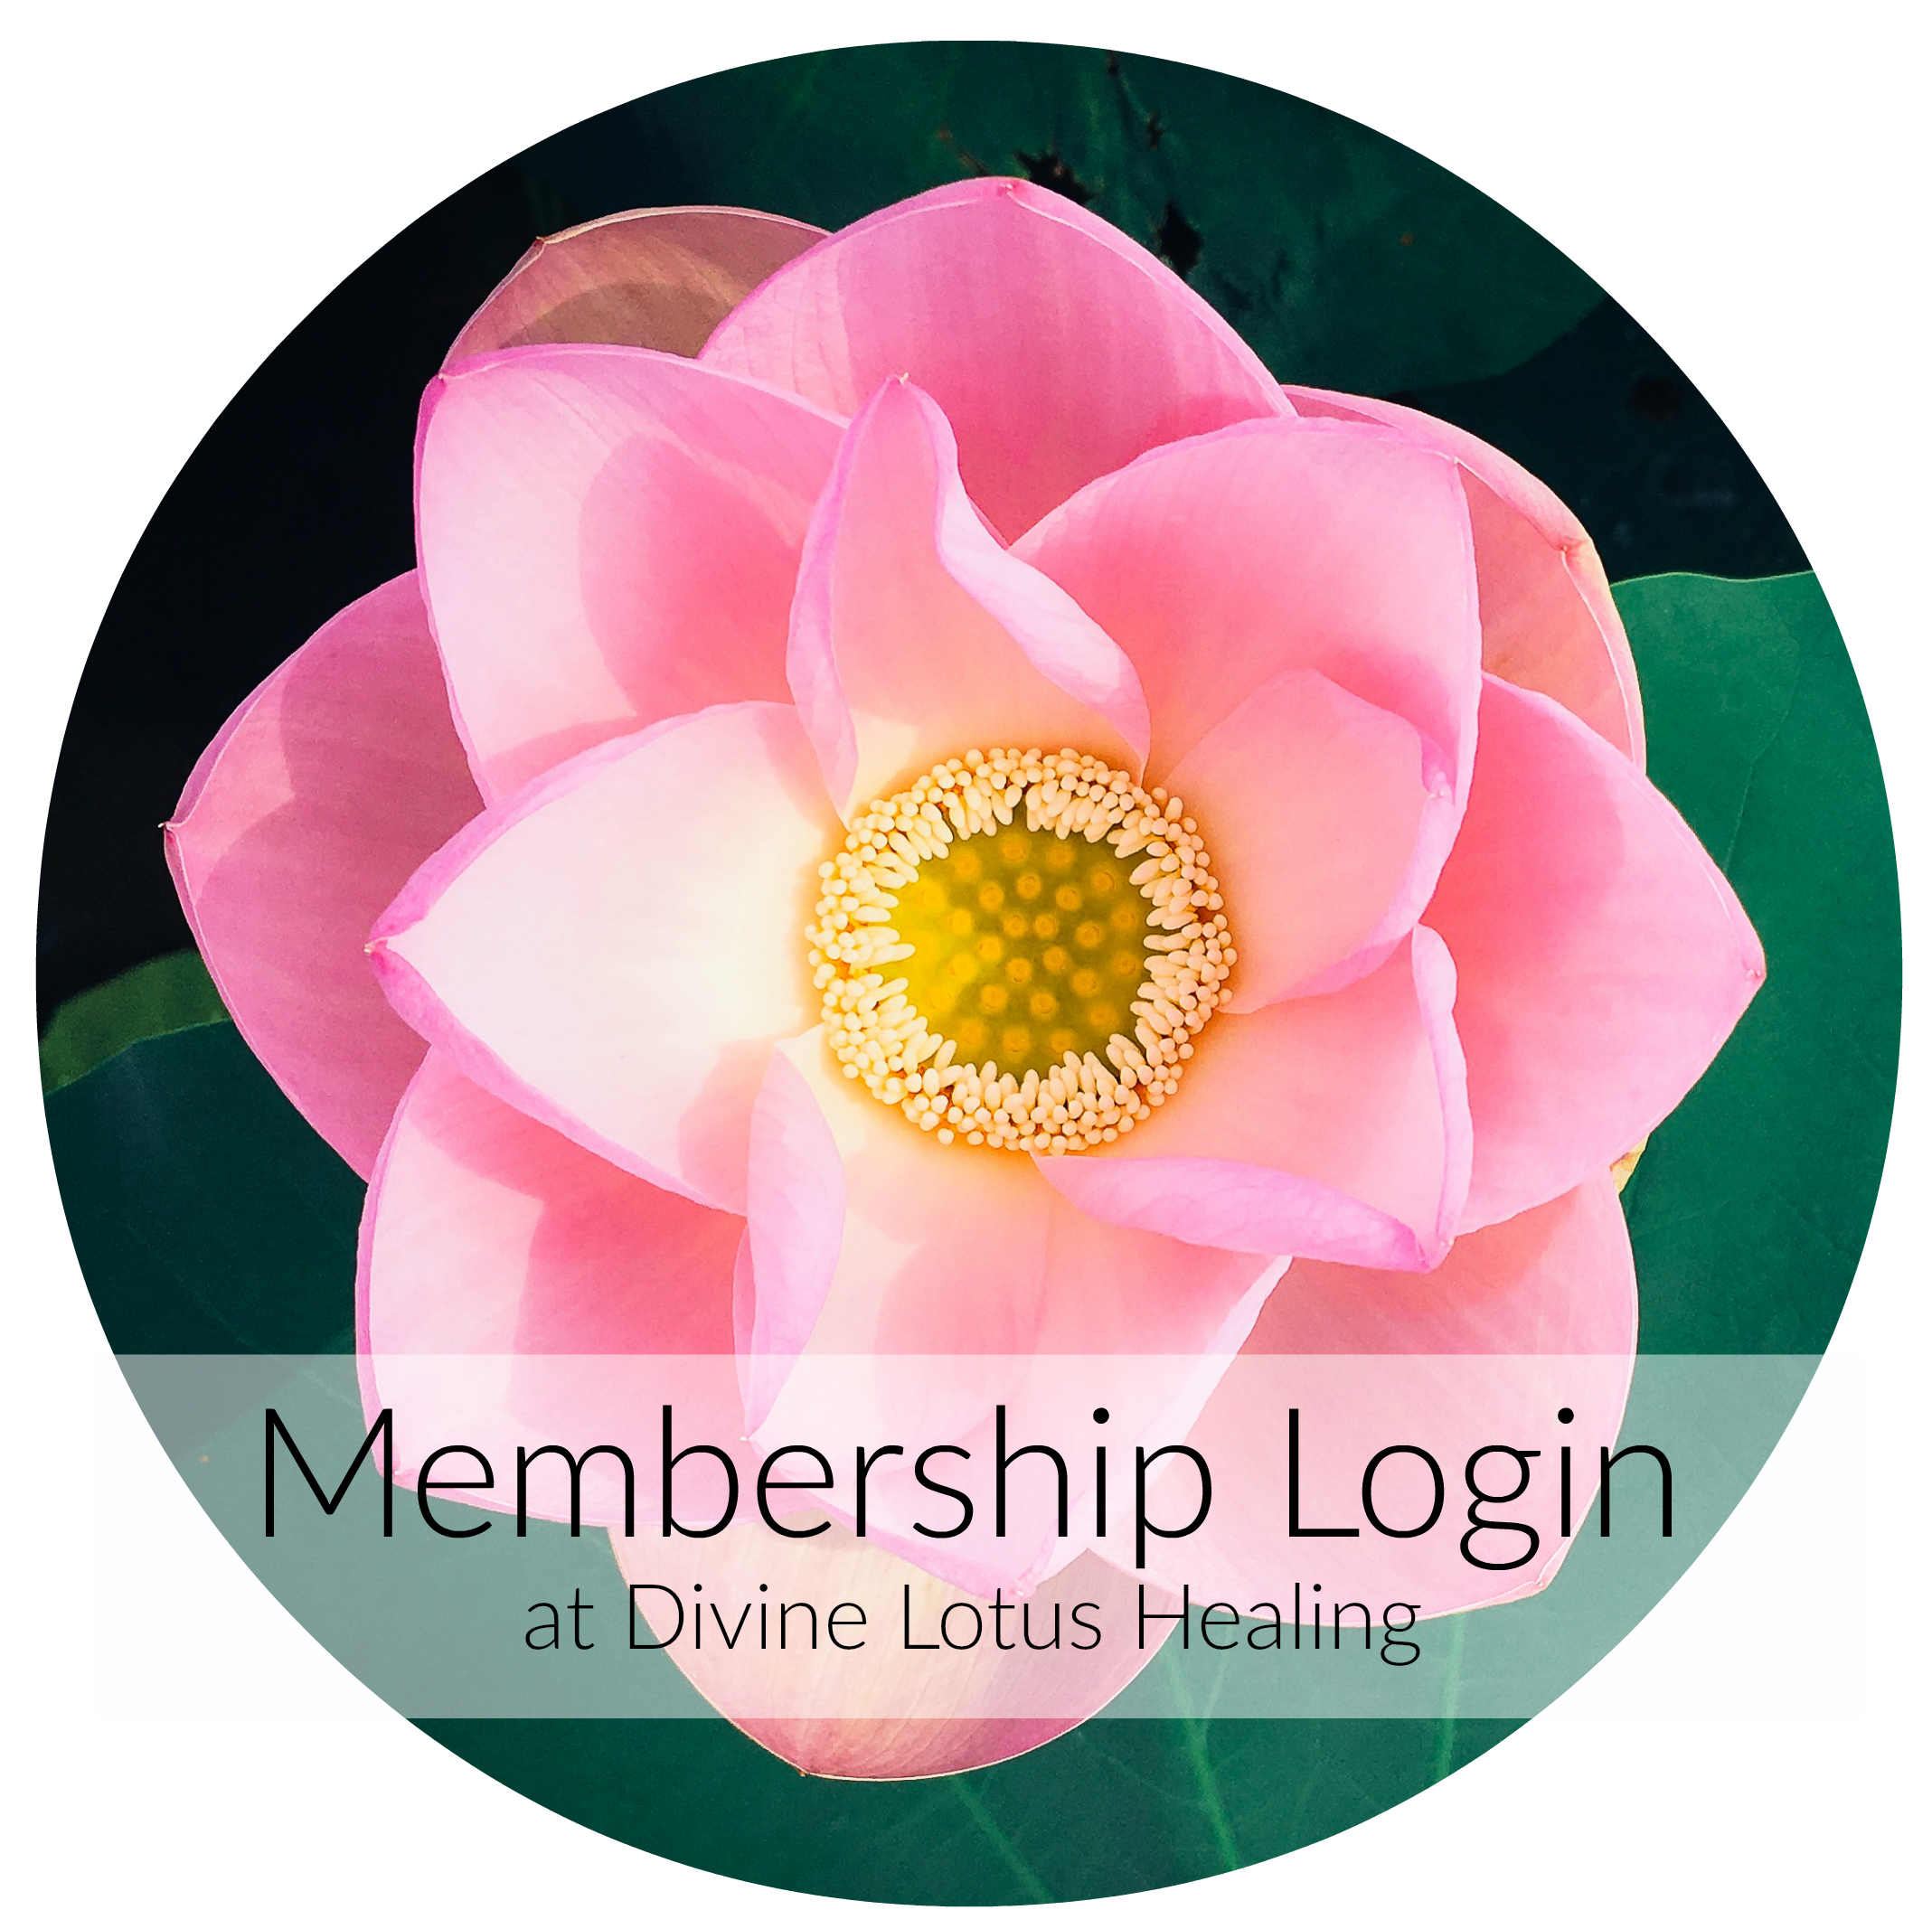 Membership Login at Divine Lotus Healing